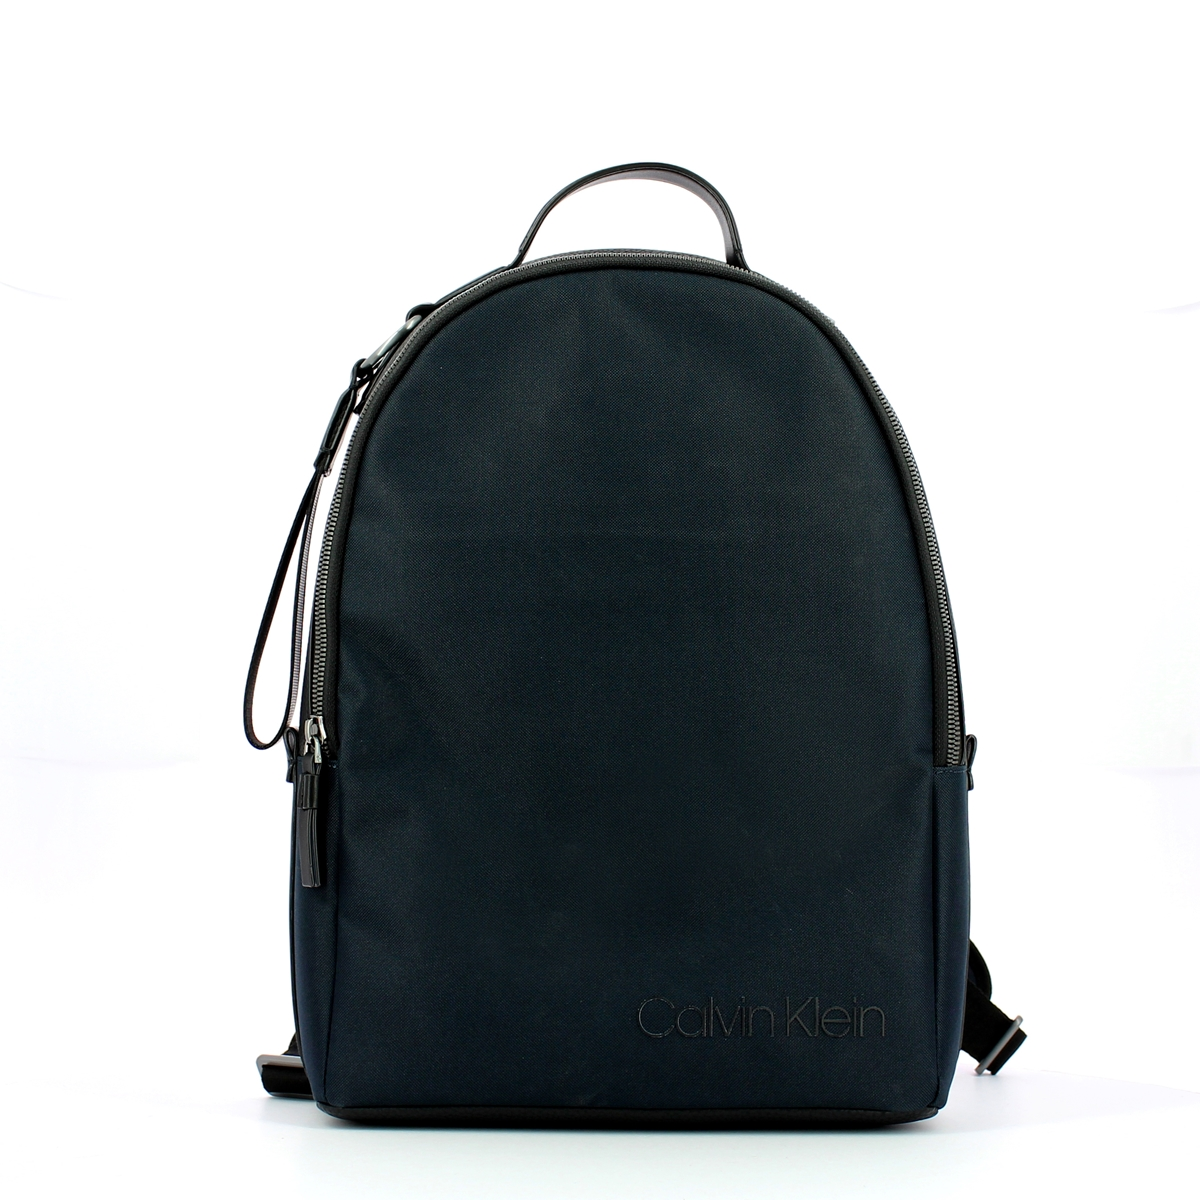 VAULT ROUND BACKPACK, 068